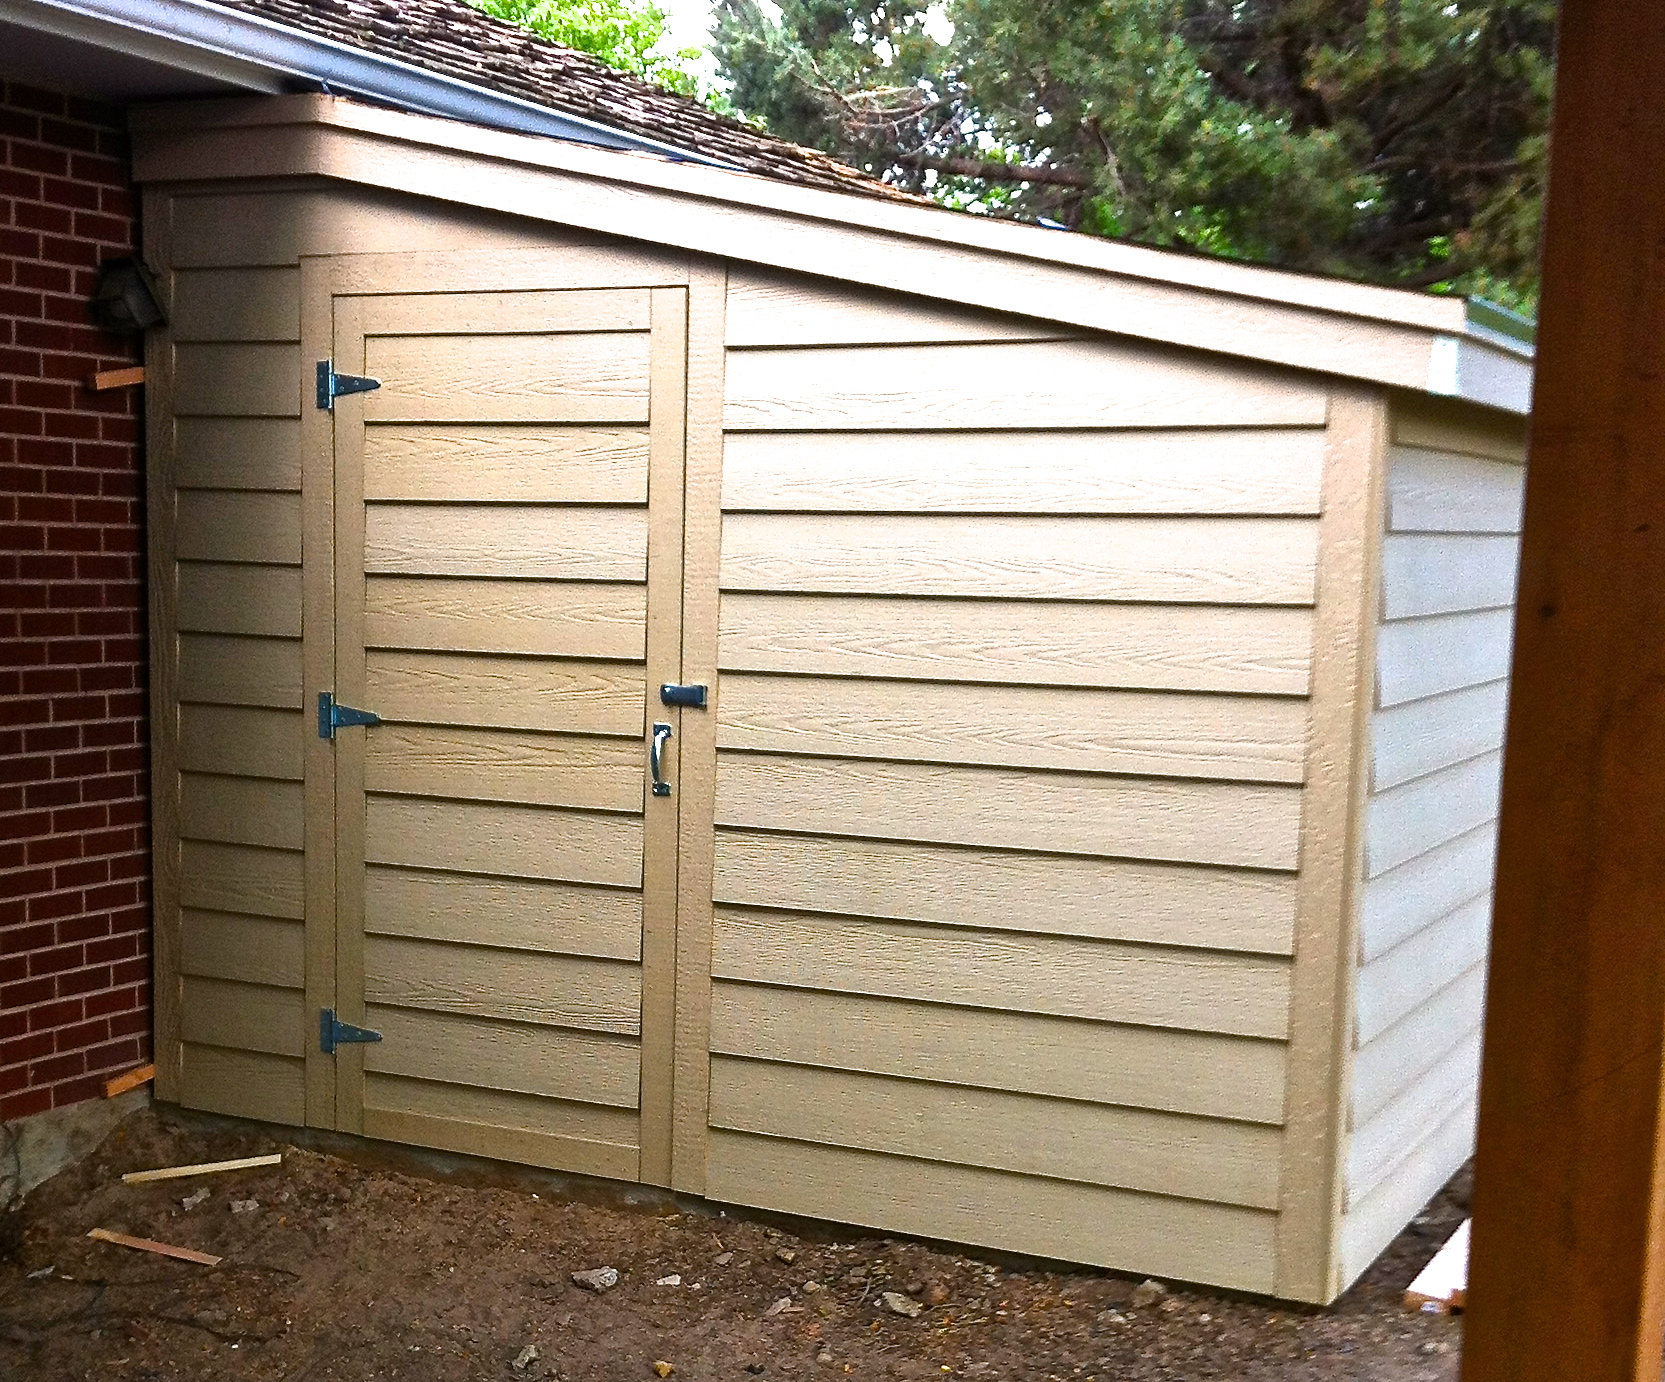 How To Build A Storage Shed Attached To Your Home | Jim ...